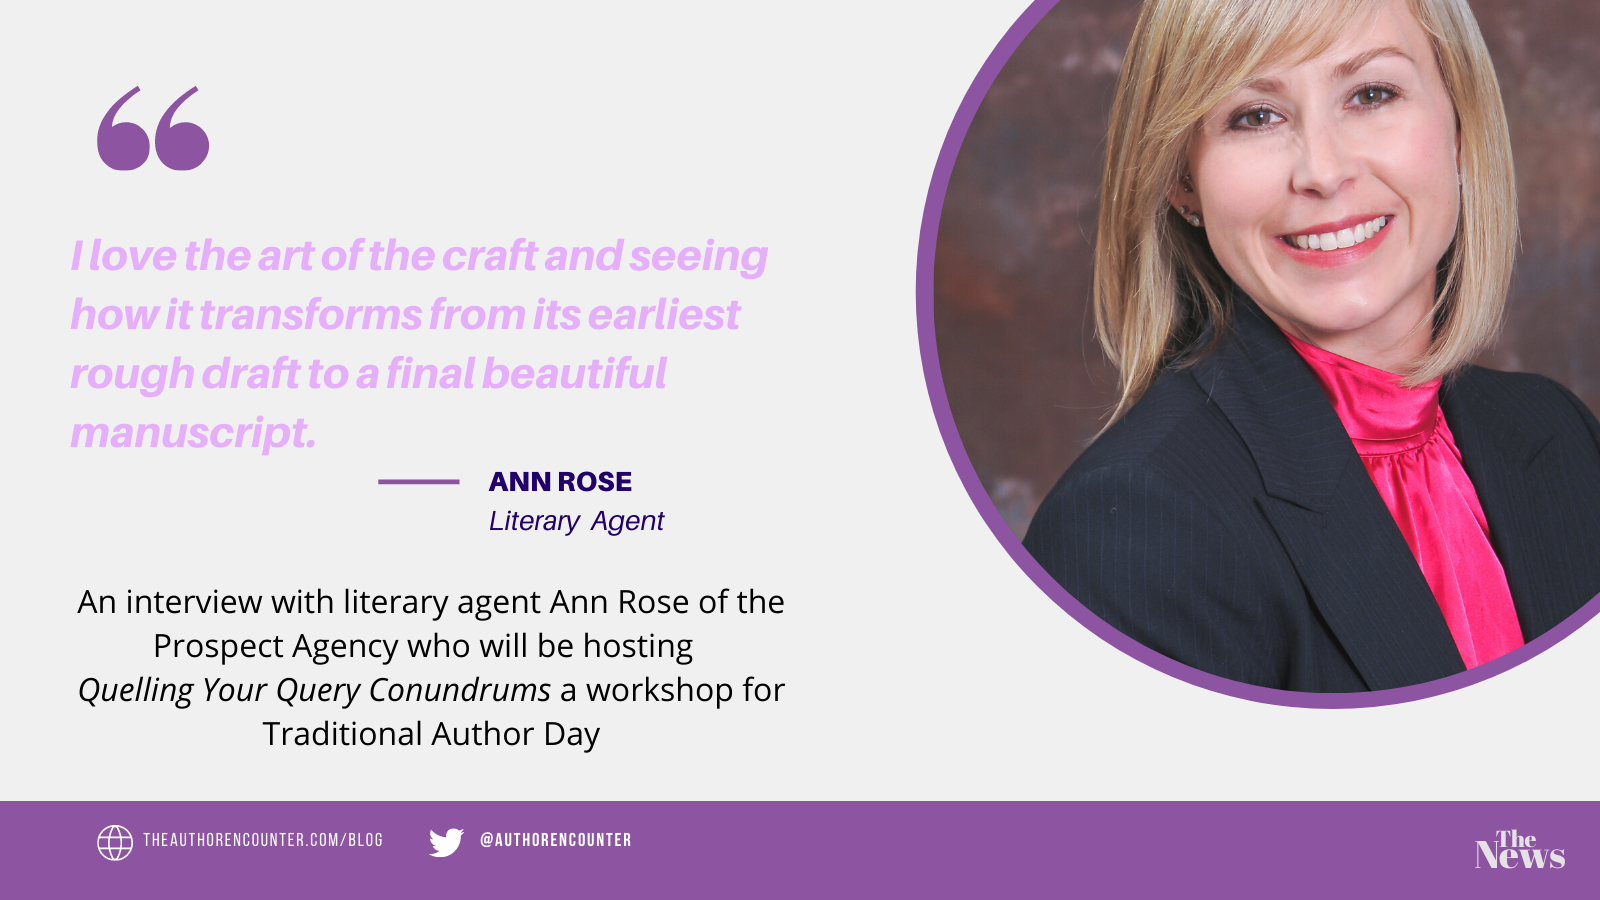 blog banner for the interview with author and literary agent ann rose